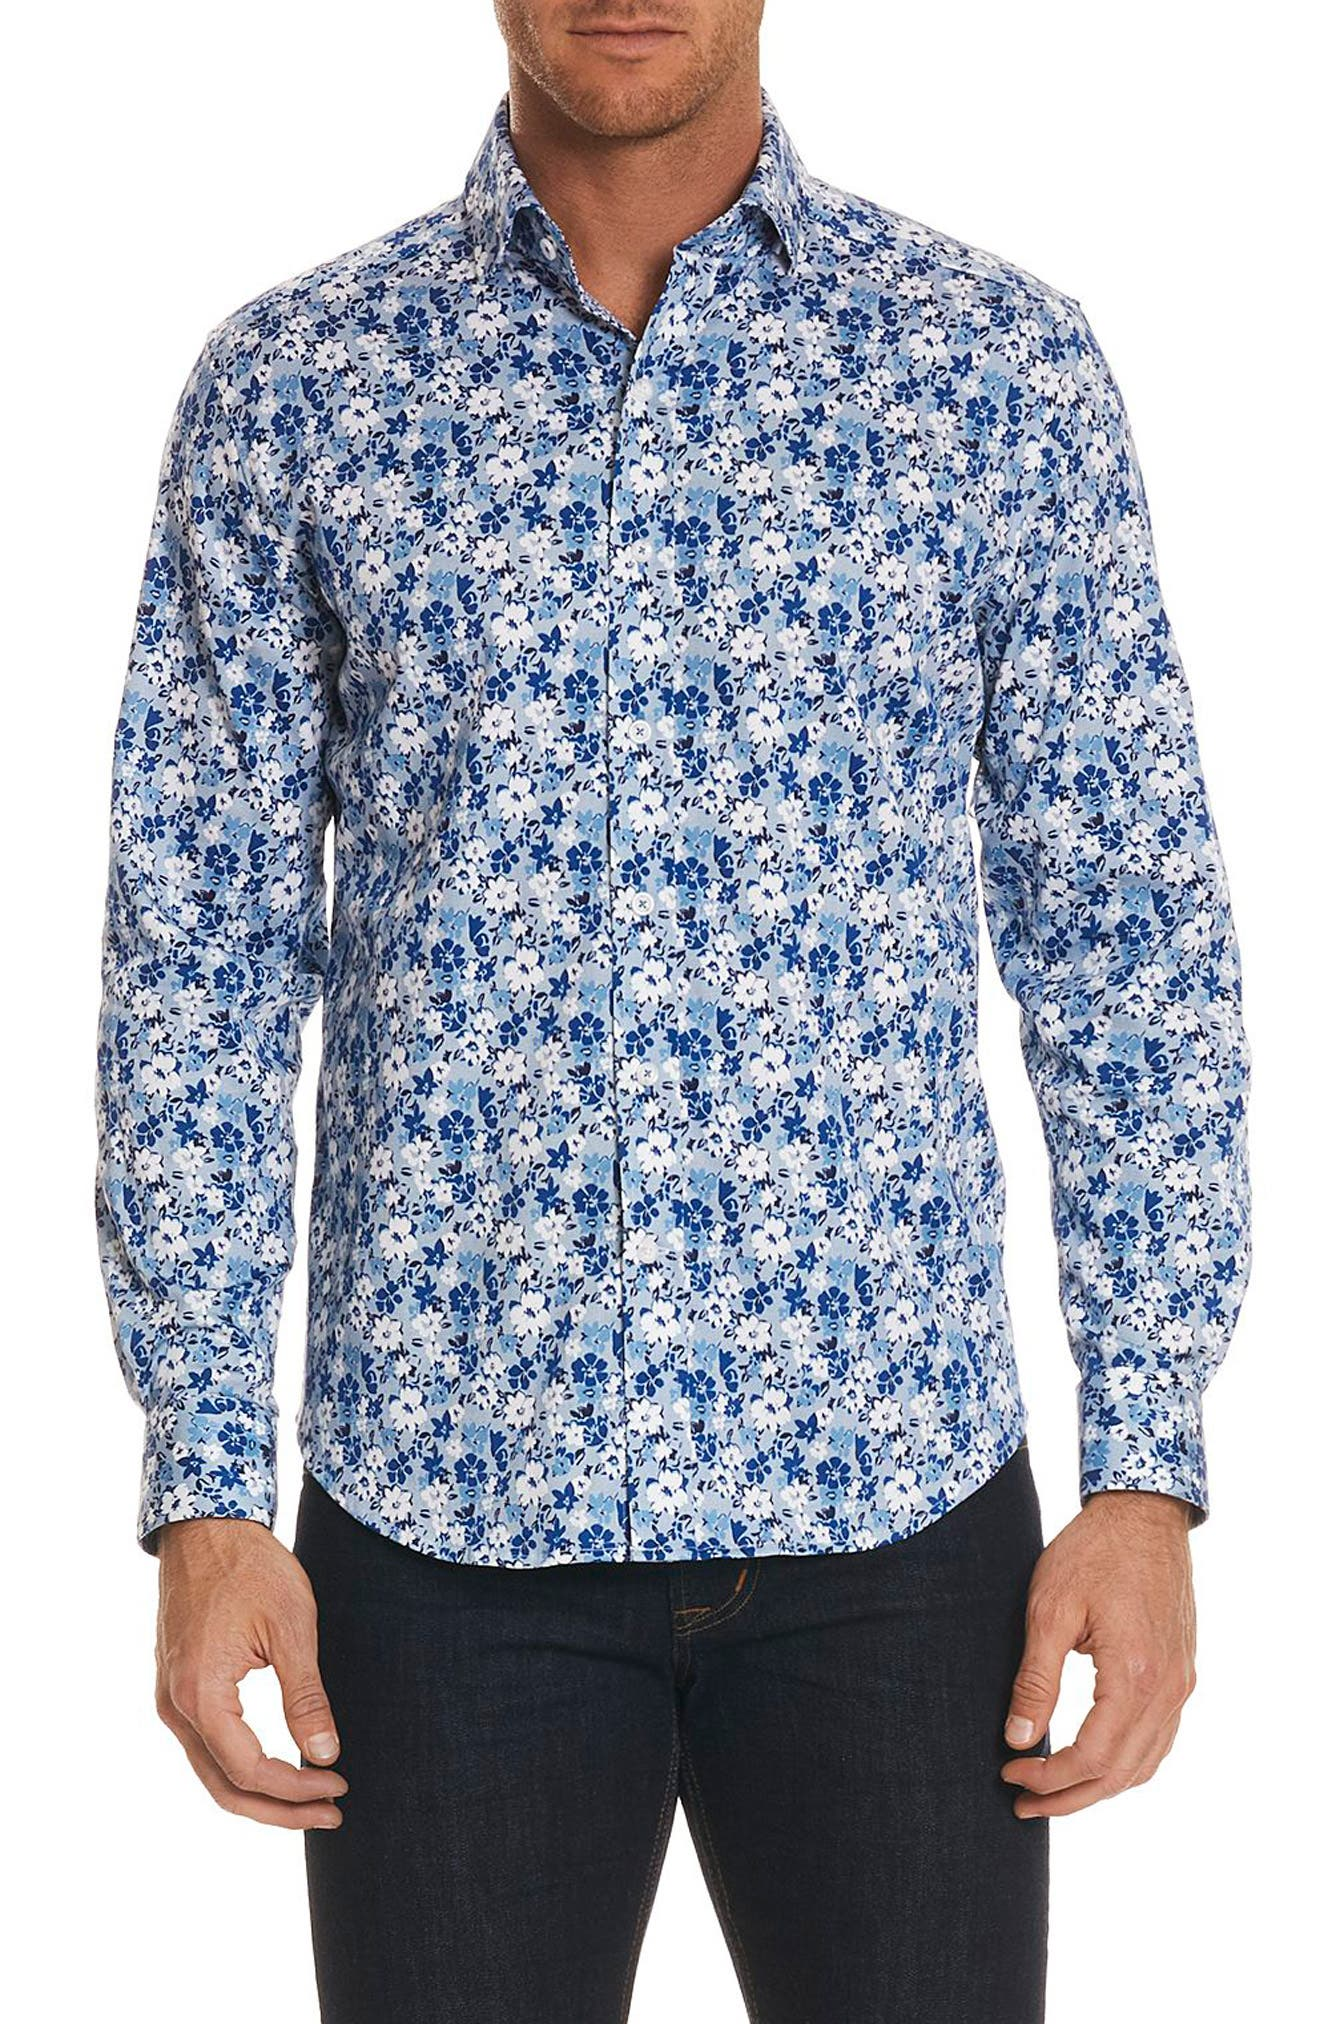 Asher Tailored Fit Floral Sport Shirt,                             Main thumbnail 1, color,